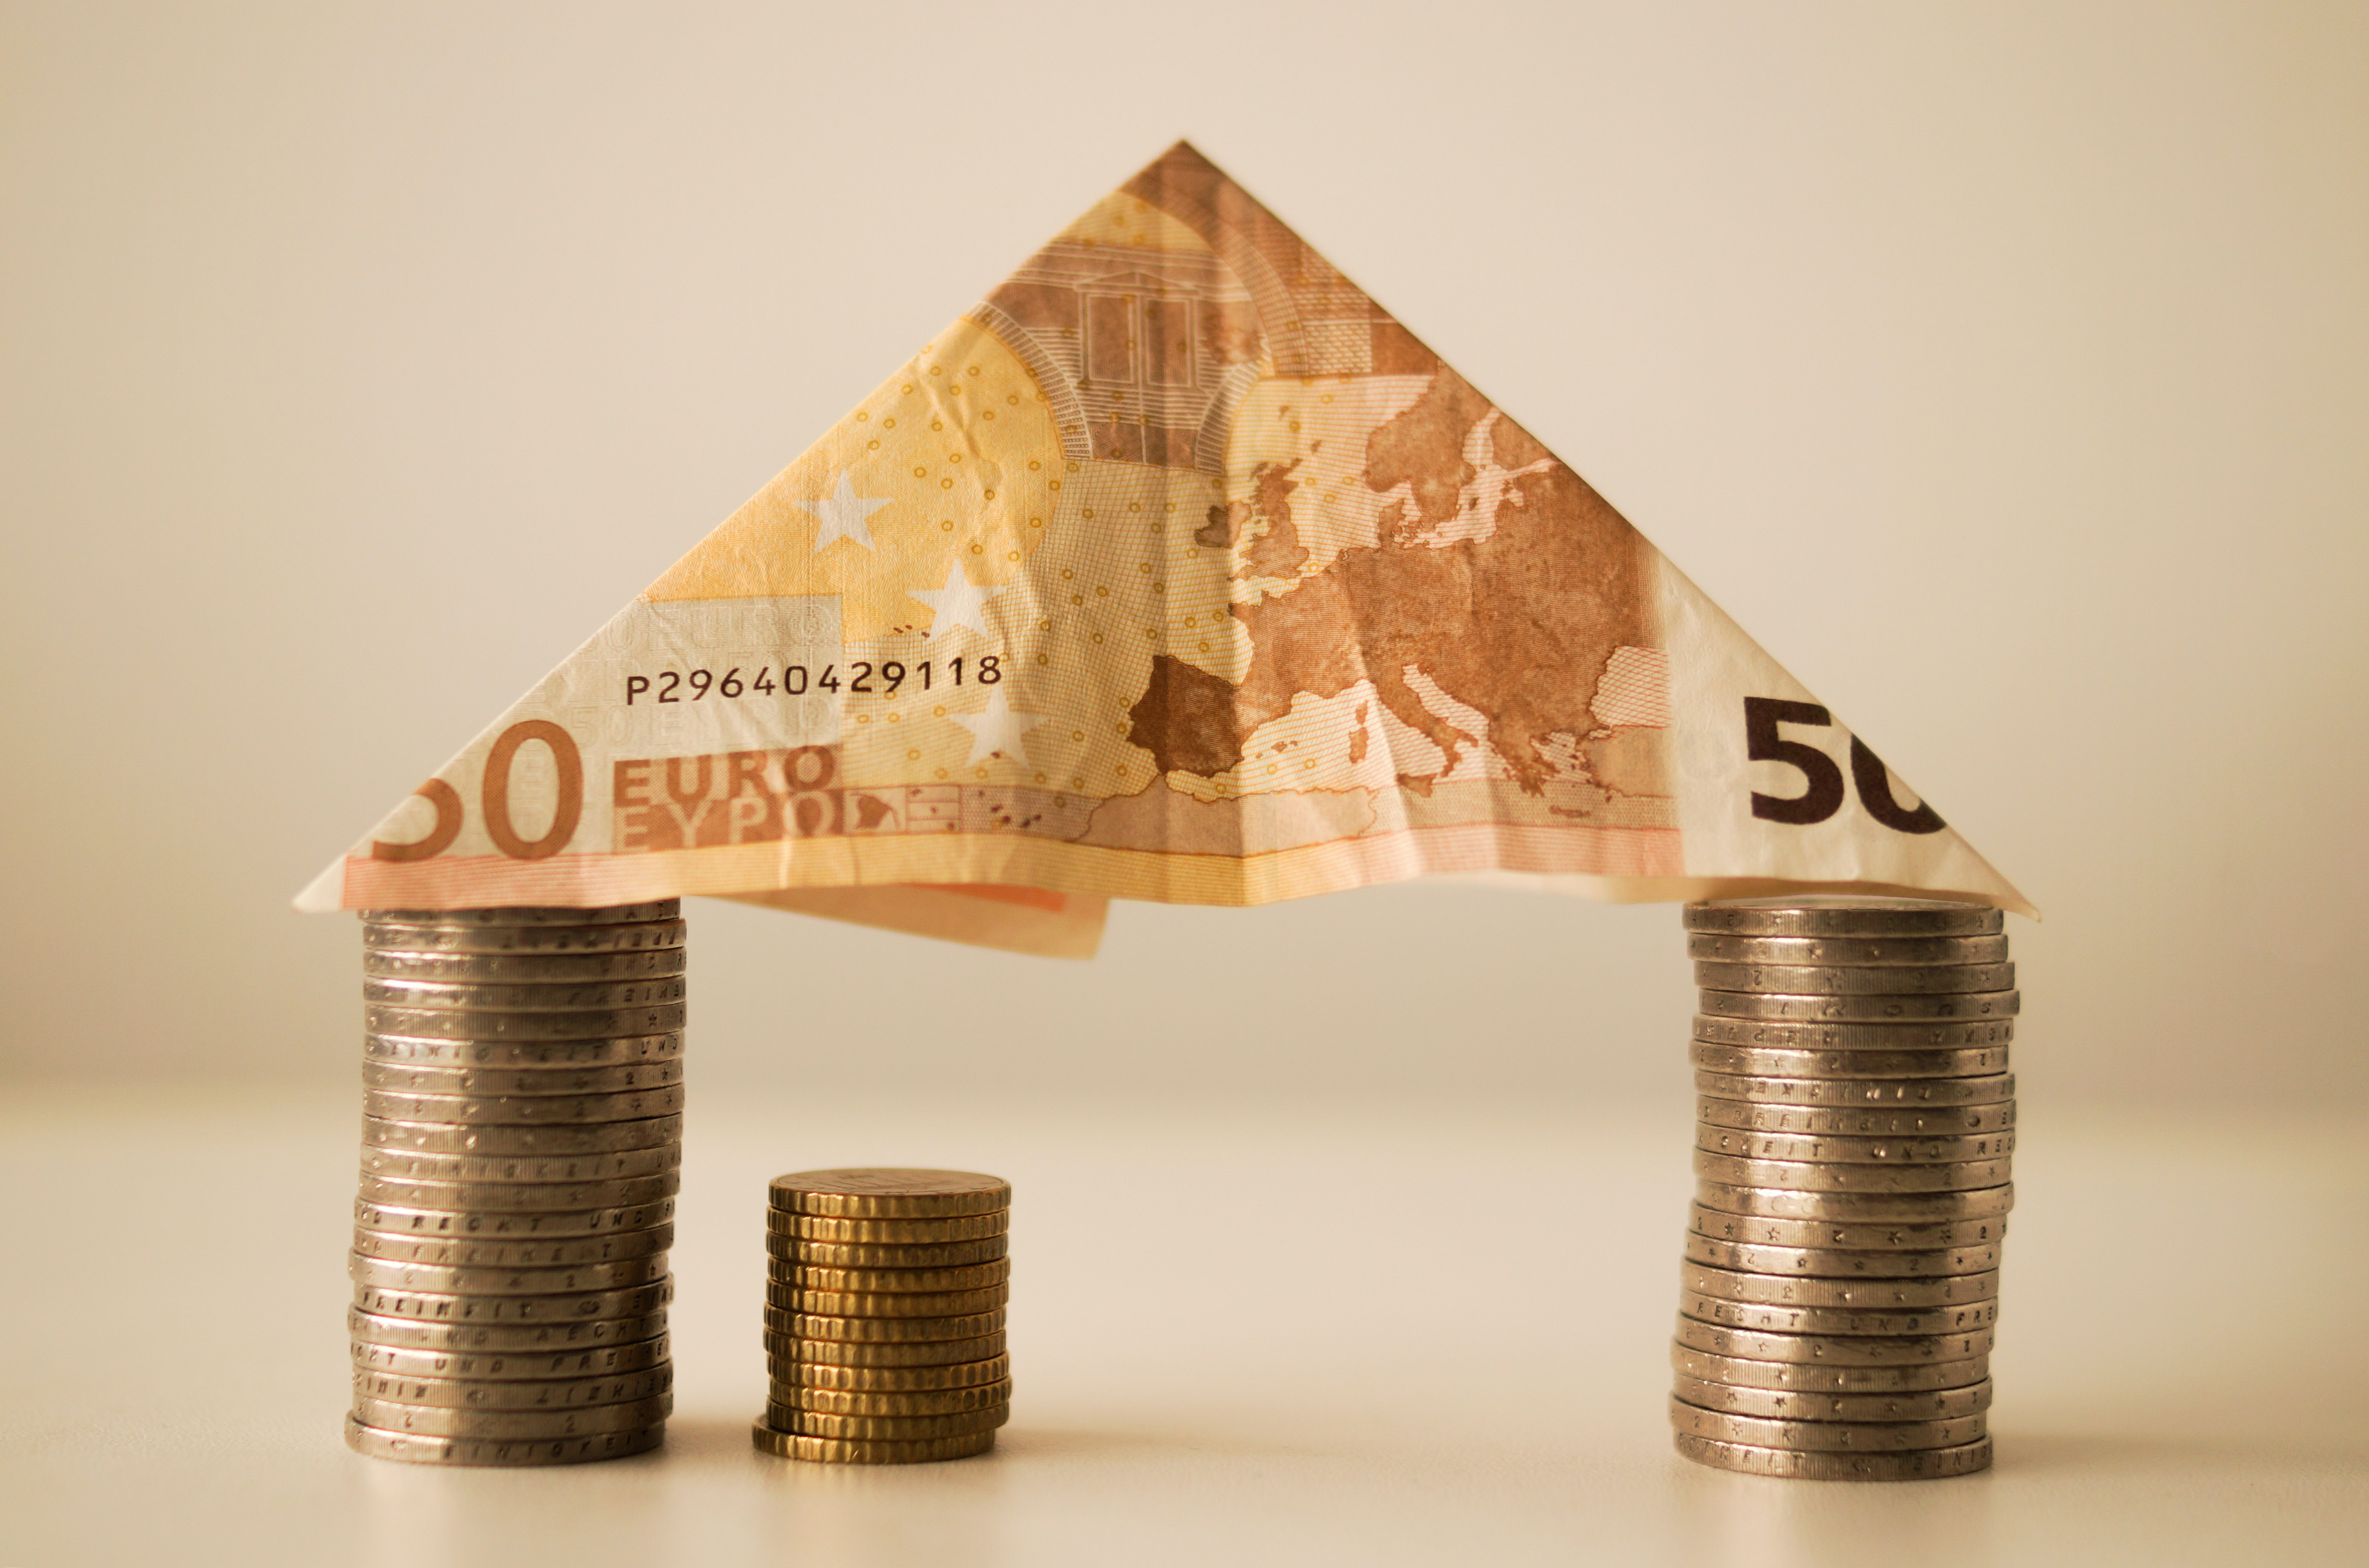 a euro note on top of a stack of euro coins making a house shape